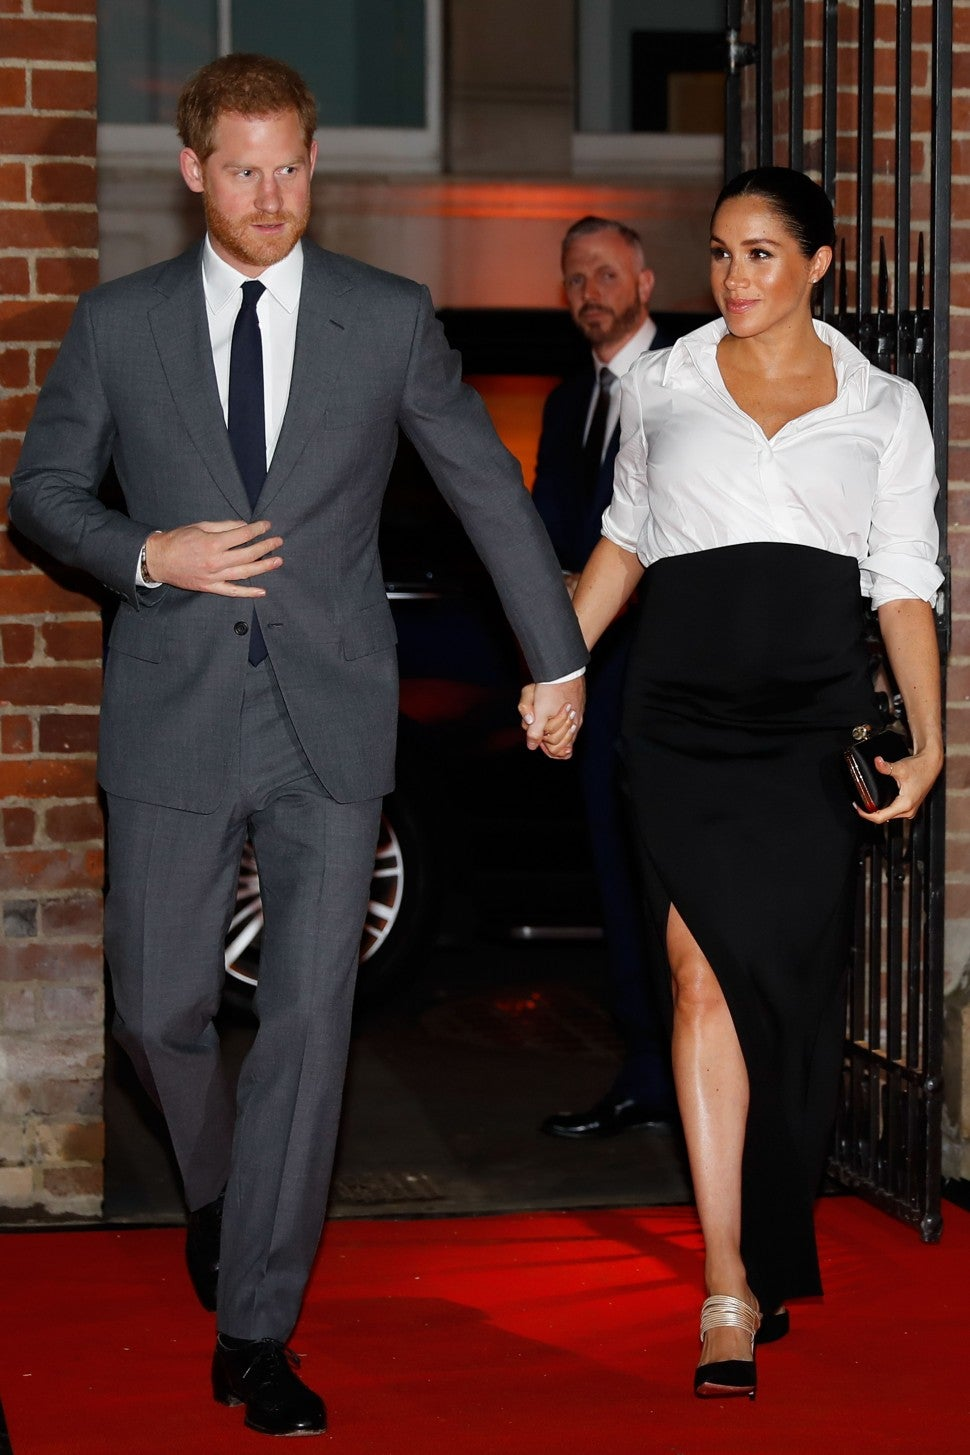 meghan markle channels her former suits character for royal outing with prince harry entertainment tonight meghan markle channels her former